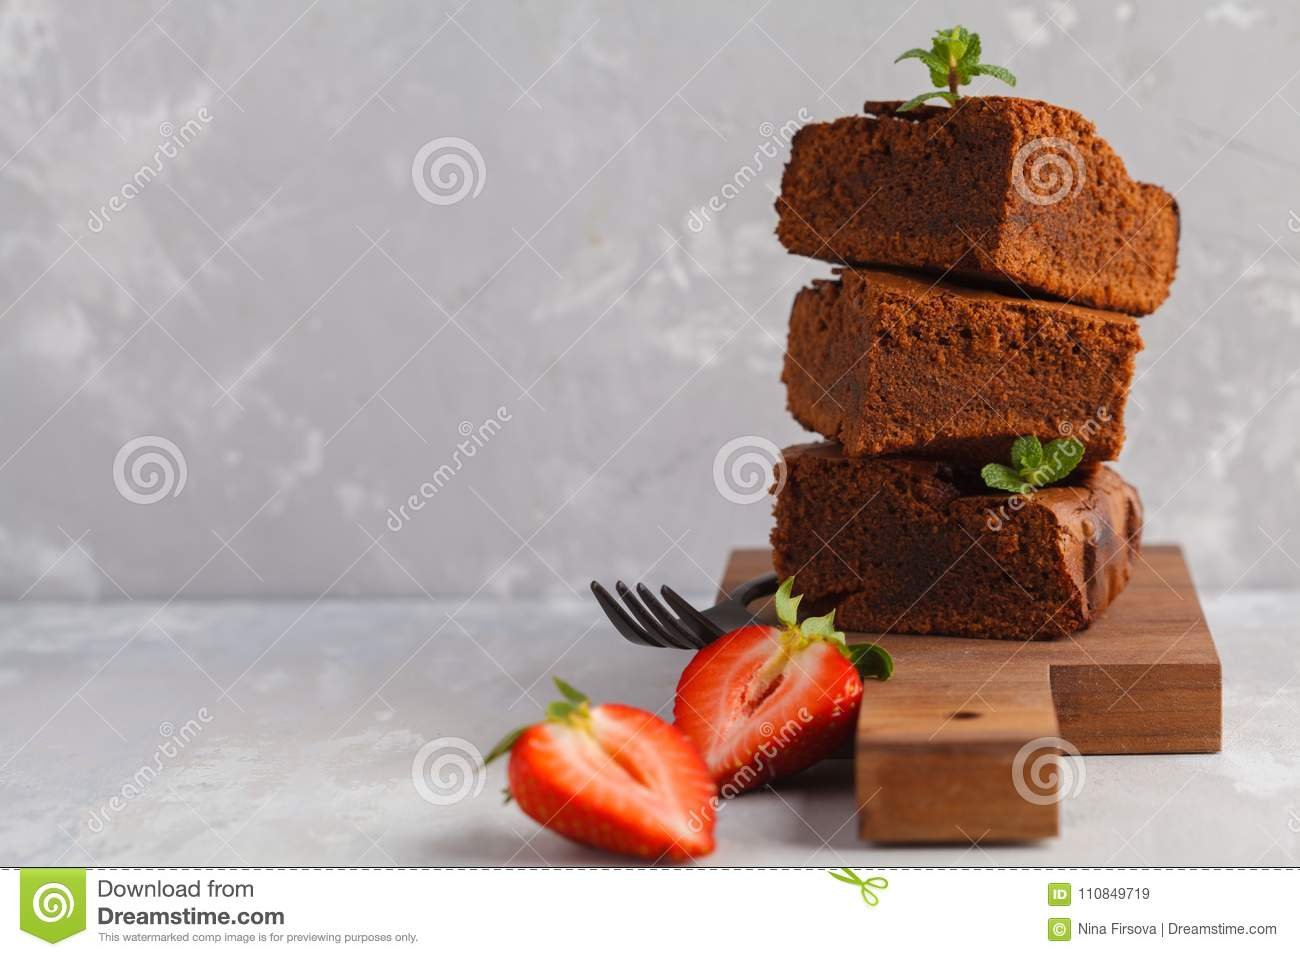 Stack Of Pieces Of Homemade Dark Chocolate Brownie With Strawberries